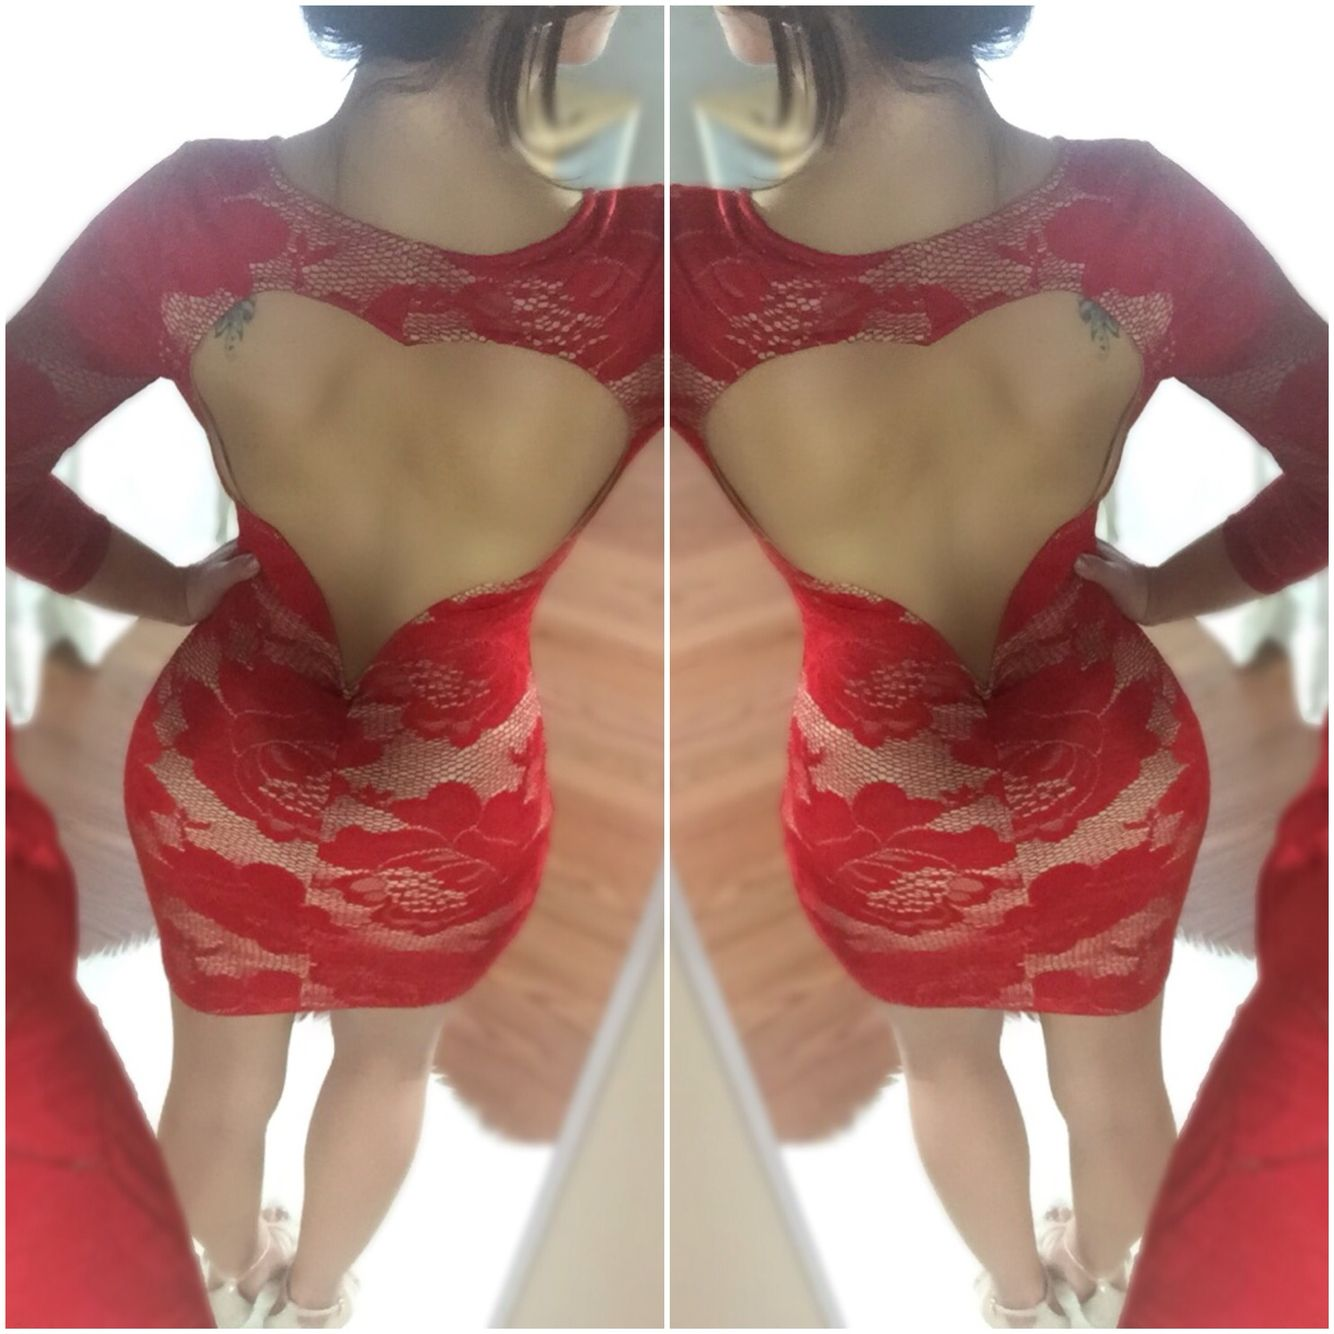 https://www.boutiquebeaumonde.com/collections/new-arrivals/products/be-mine-lace-open-back-dress